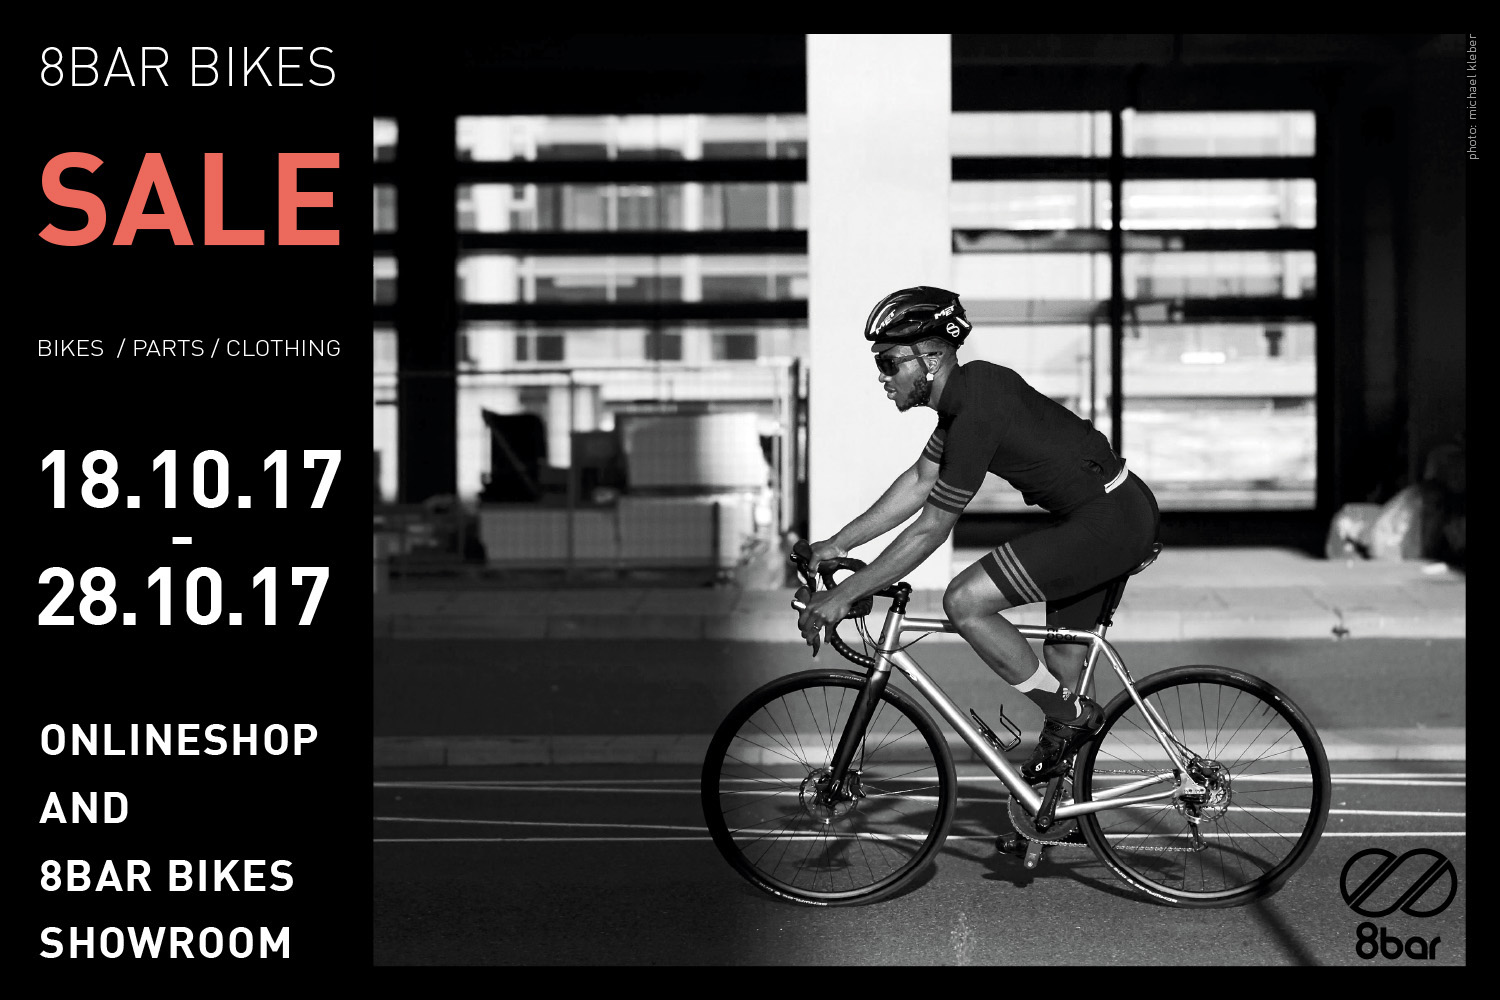 8bar bikes blog header end of season sale 2017 02 - 8bar Sale - Save up to 50%!